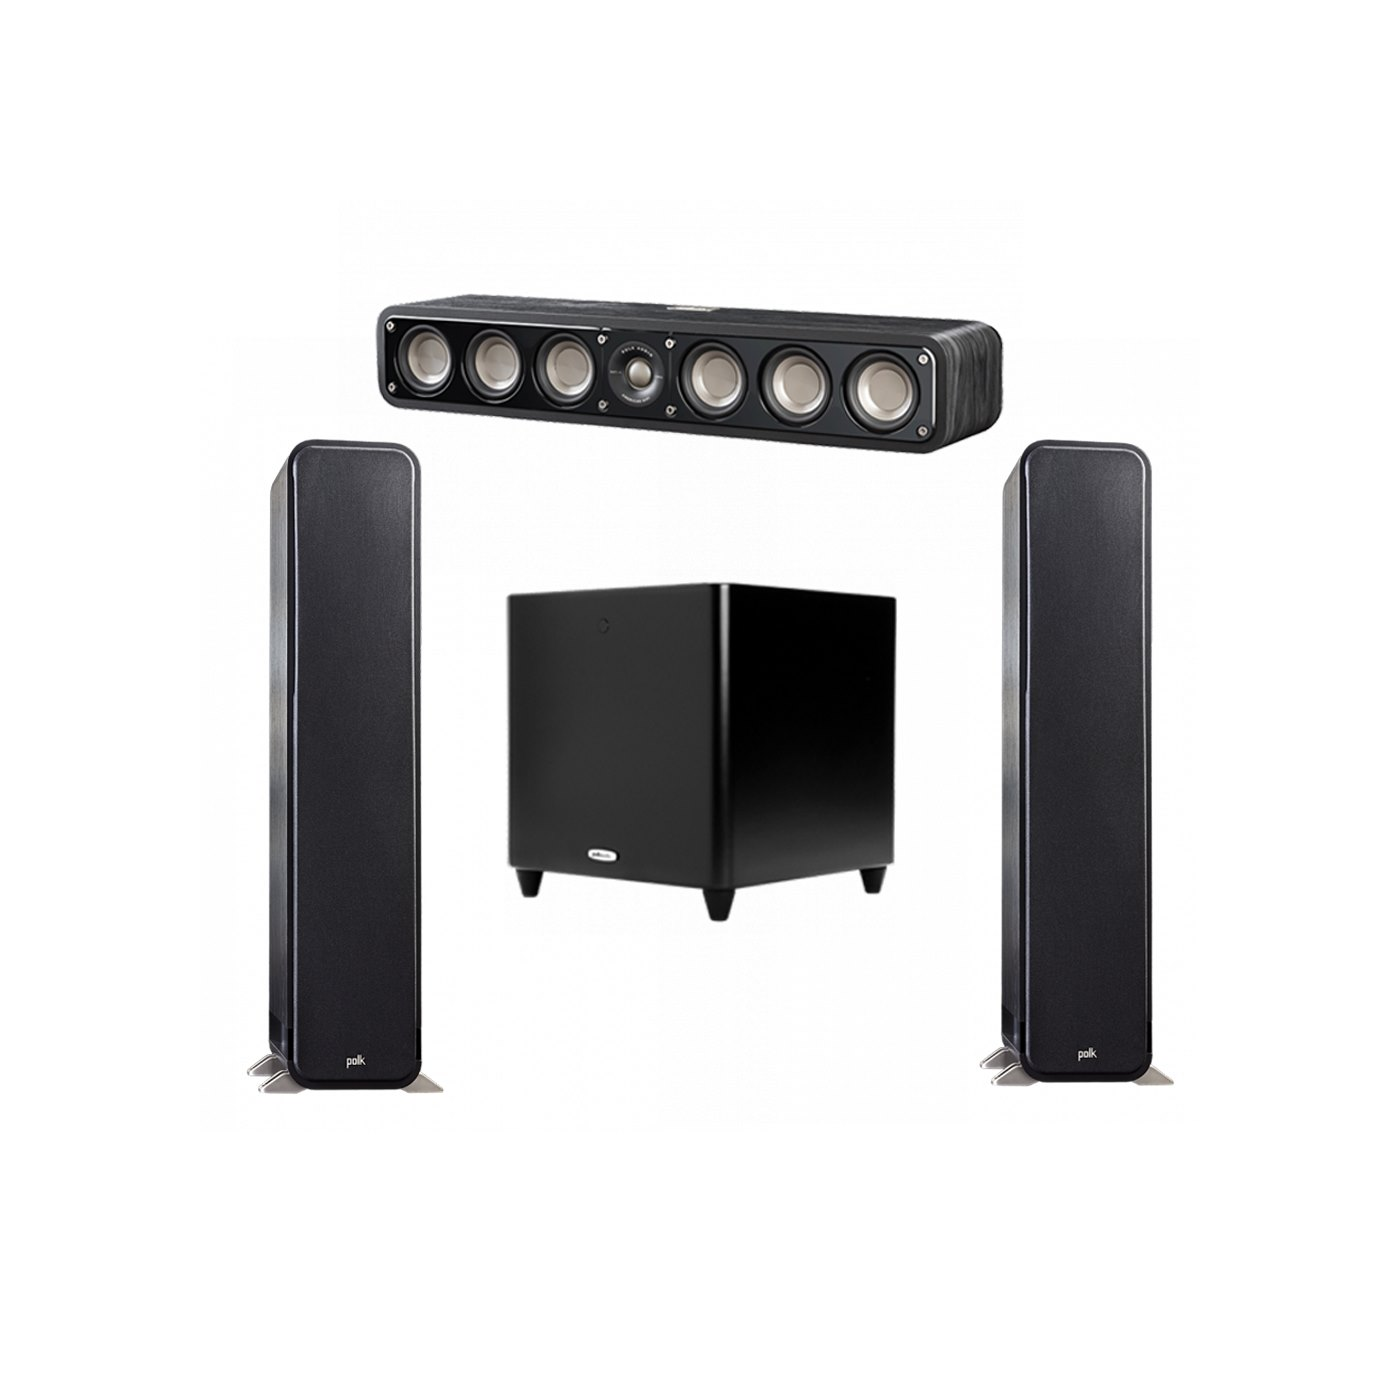 Polk Audio Signature 3.1 System with 2 S55 Tower Speaker, 1 Polk S35 Center Speaker, 1 Polk DSW PRO 660 wi Subwoofer